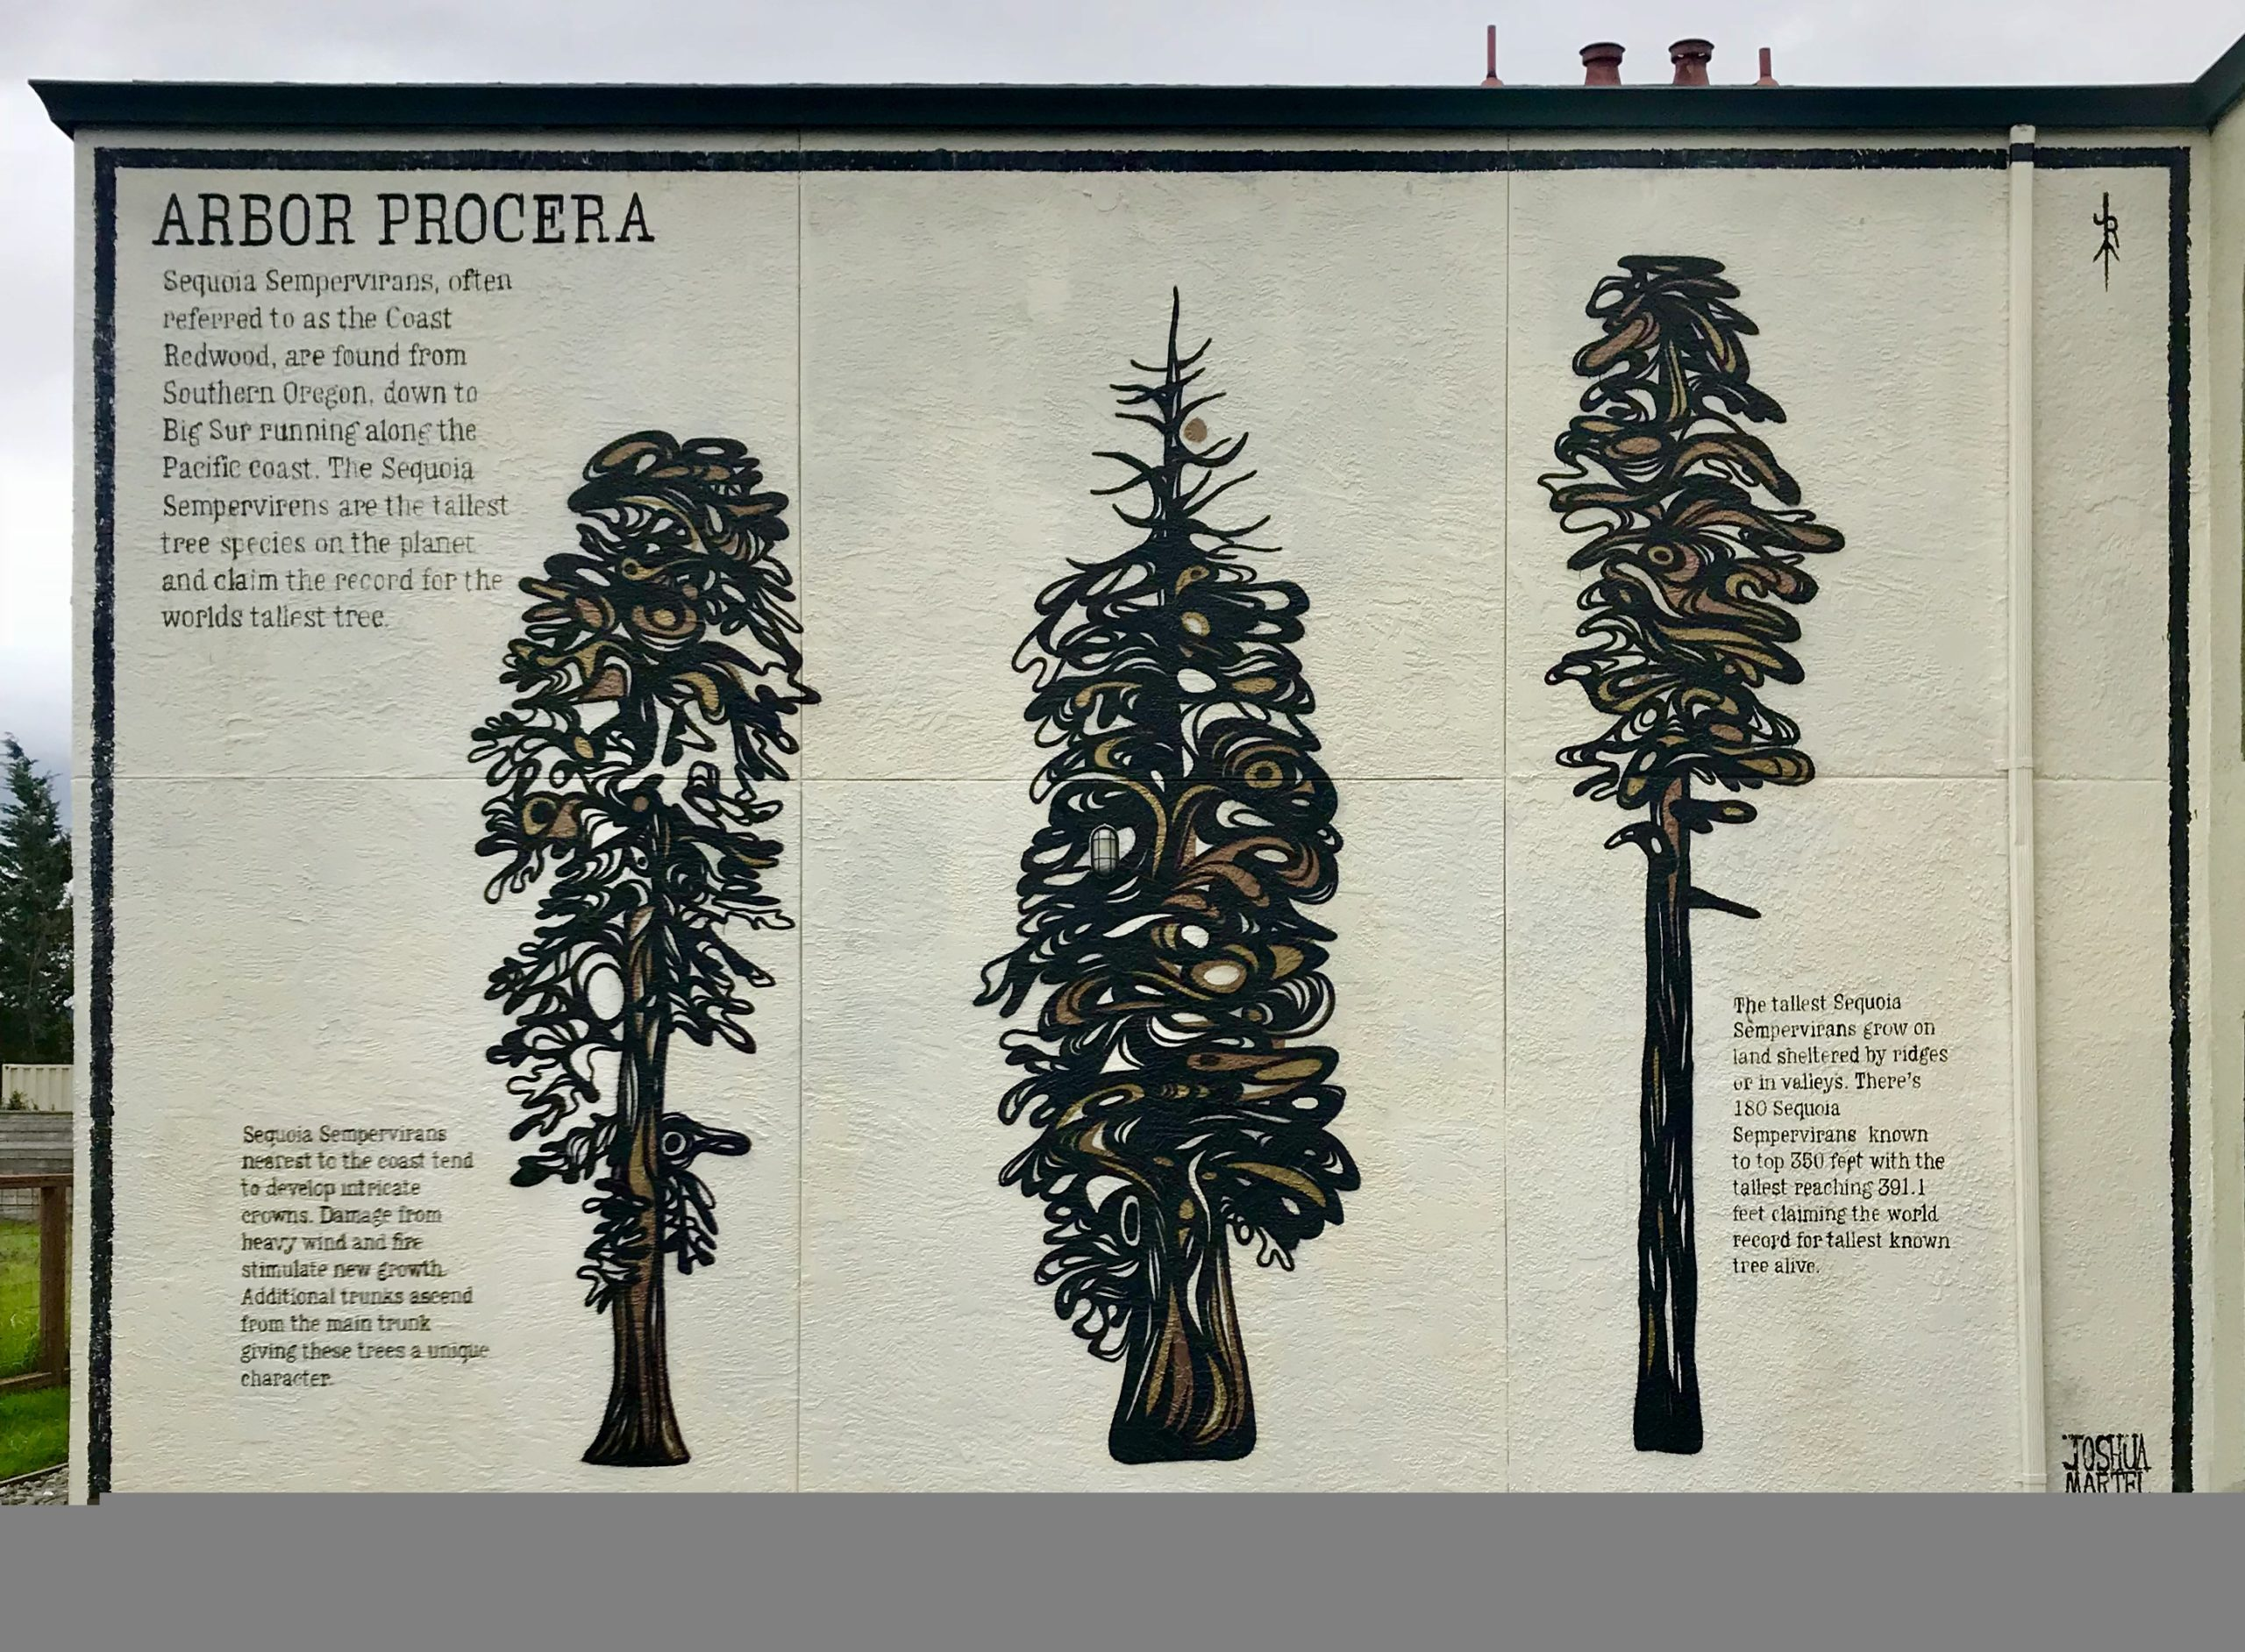 Mural of trees by Joshua Martel